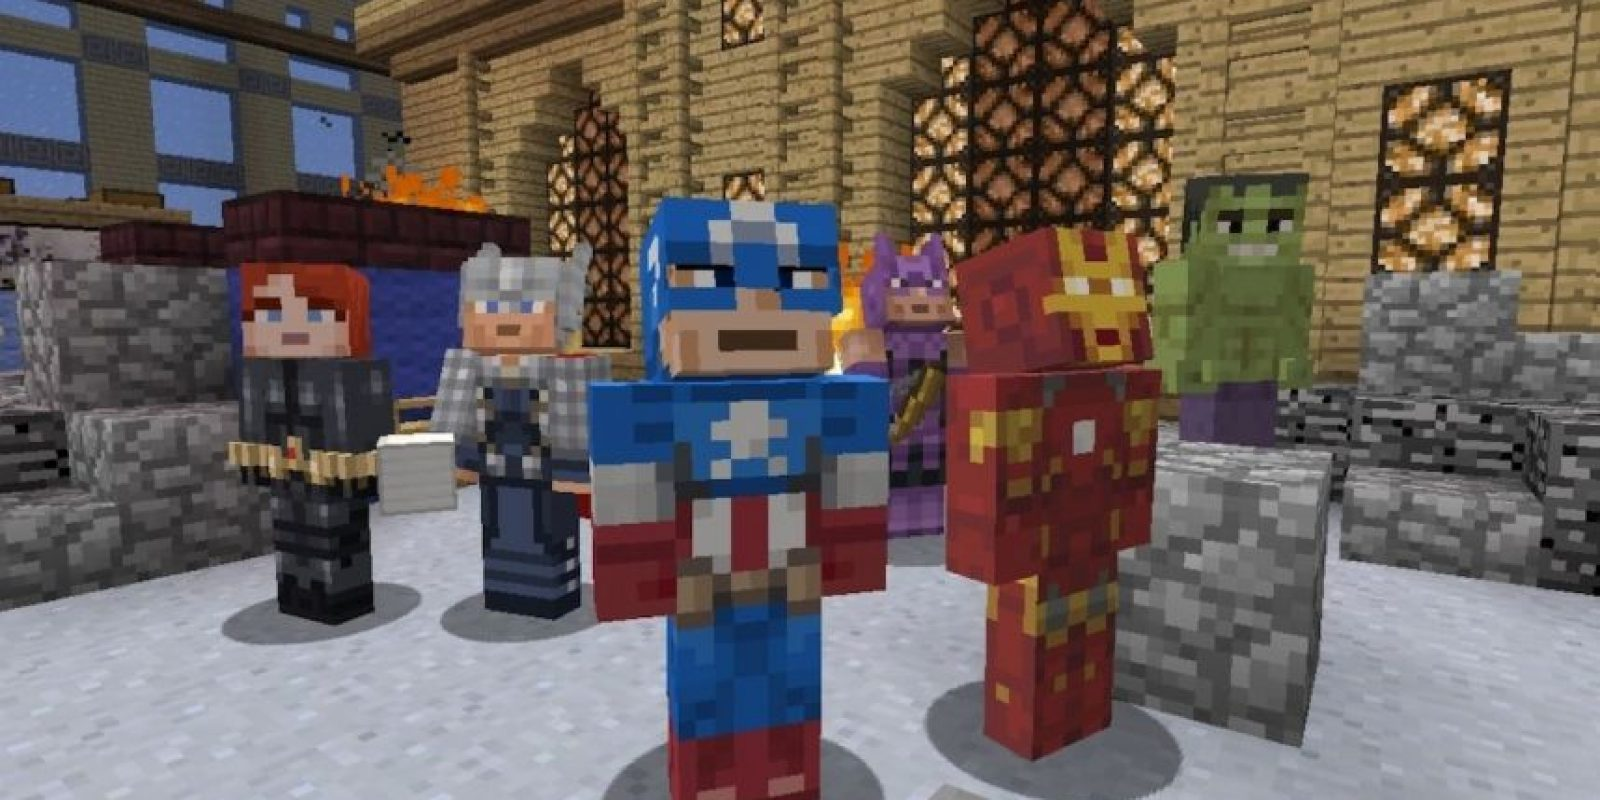 The Avengers Foto: Minecraft / Twitter